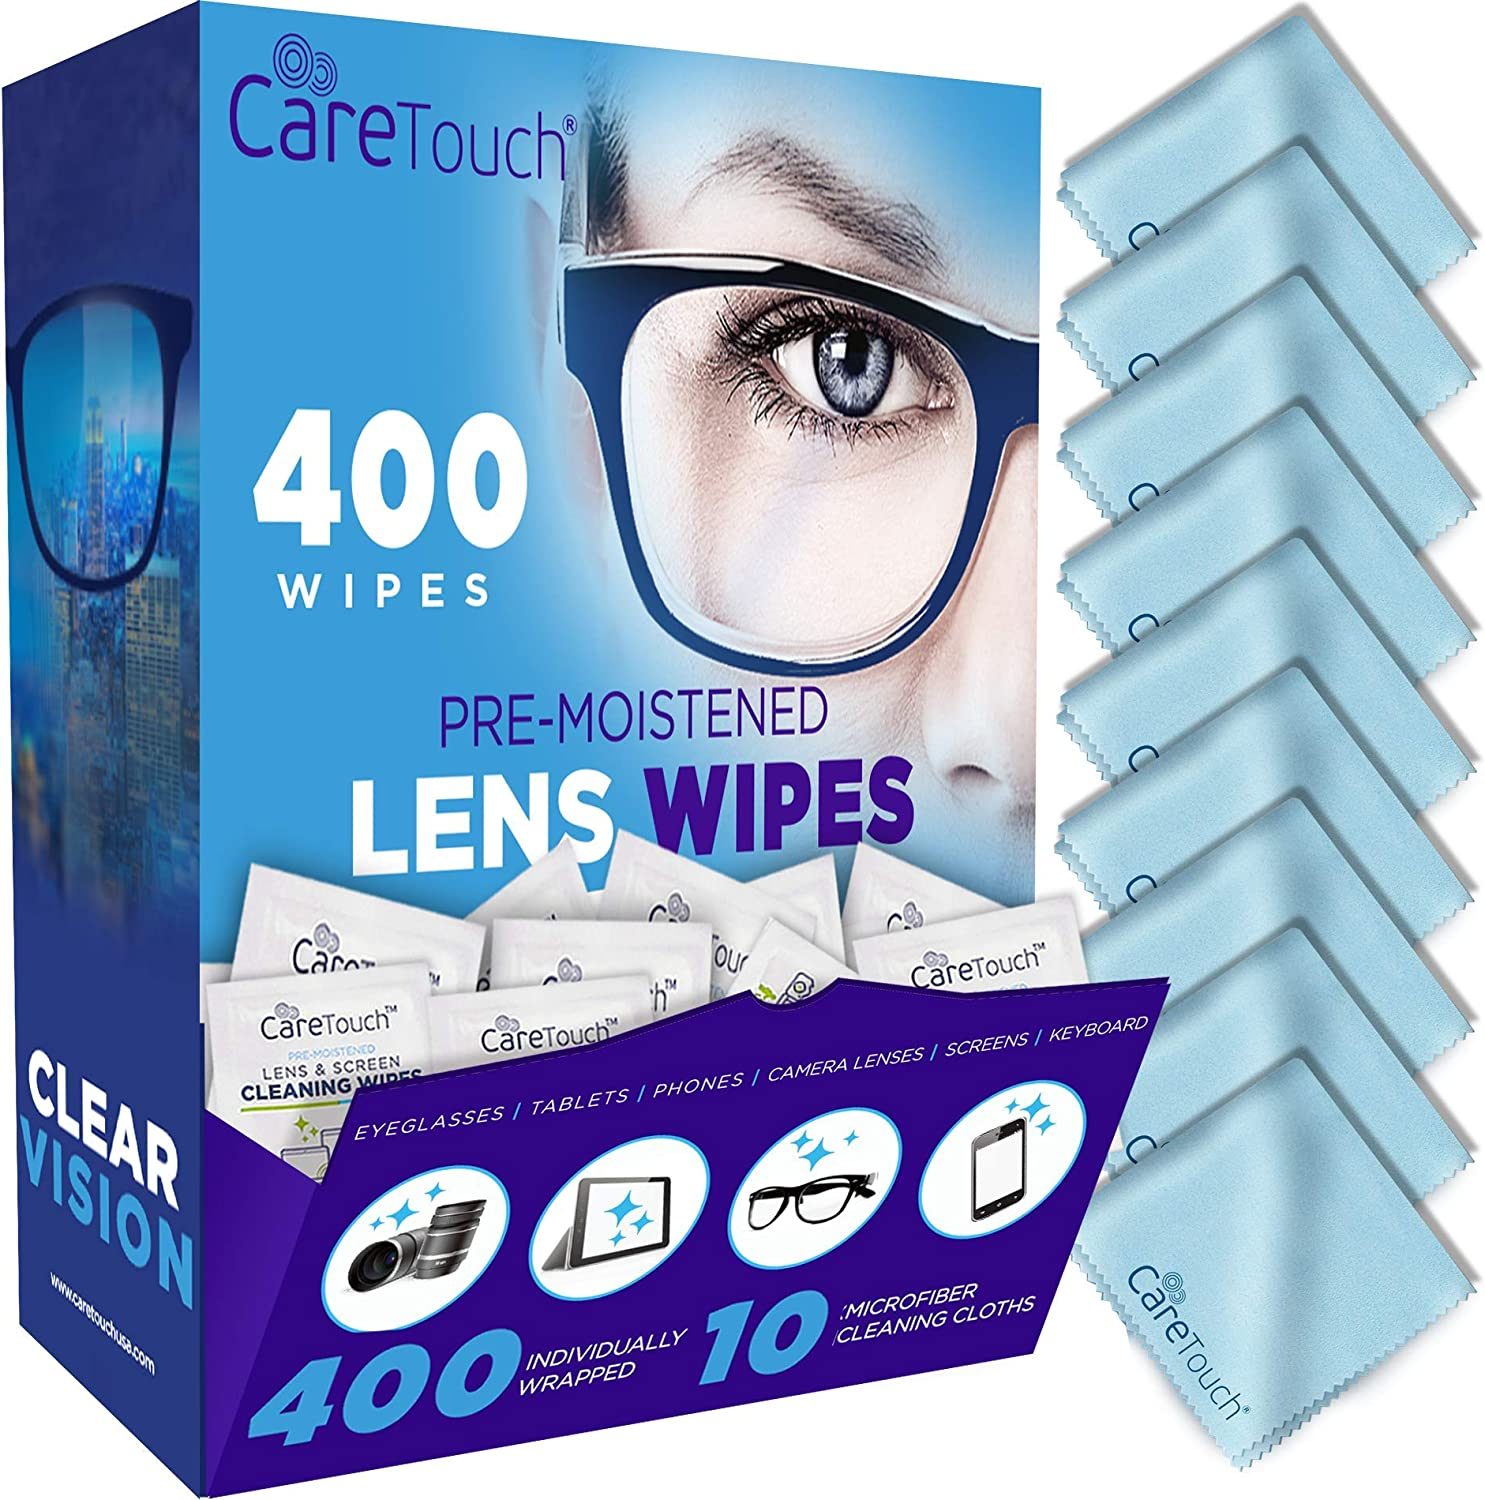 Care Touch Lens Cleaning Wipes with Microfiber Cloths   400 Lens Cleaning Wipes and 10 Microfiber Cloths   Excellent for Glasses, Laptops, Computer Screens, and Phones